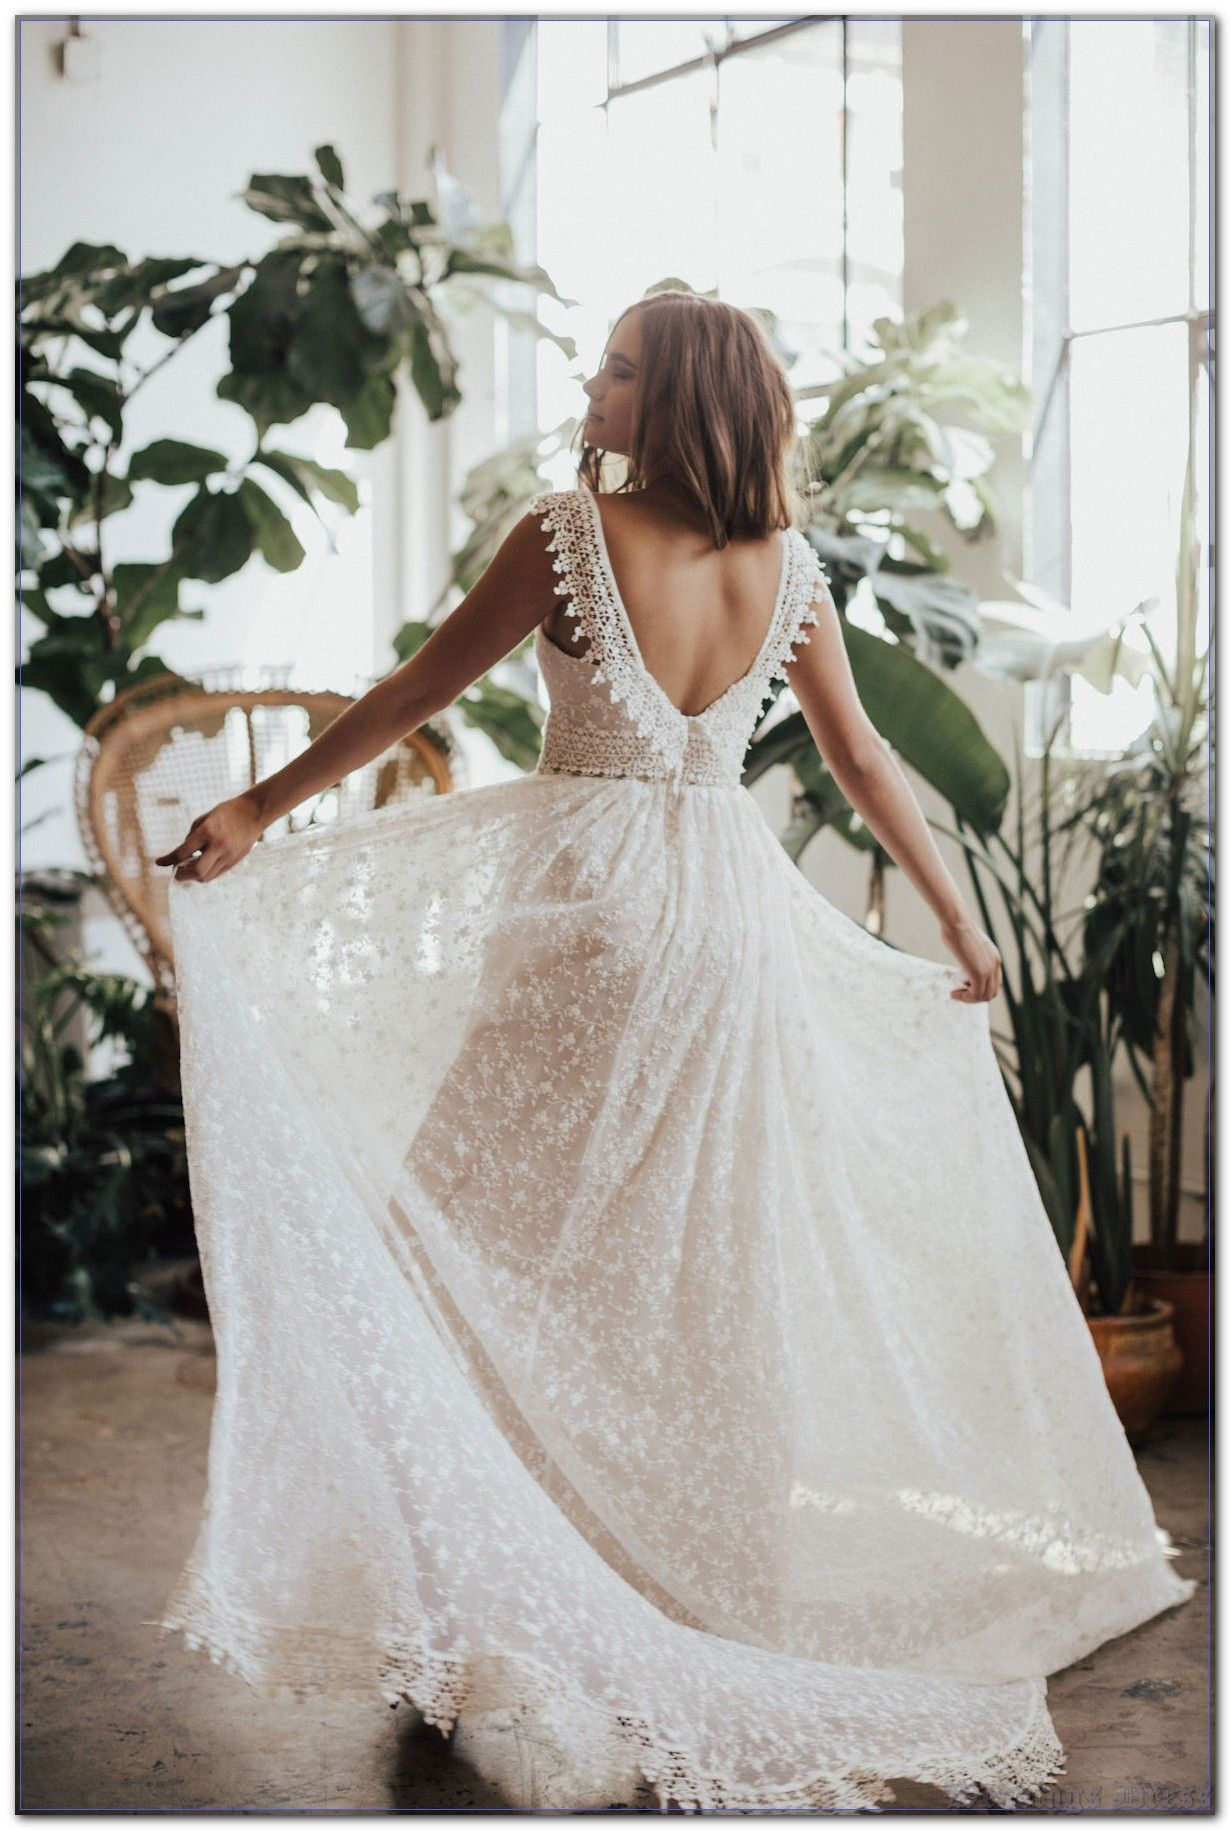 Have You Heard? Weddings Dress Is Your Best Bet To Grow